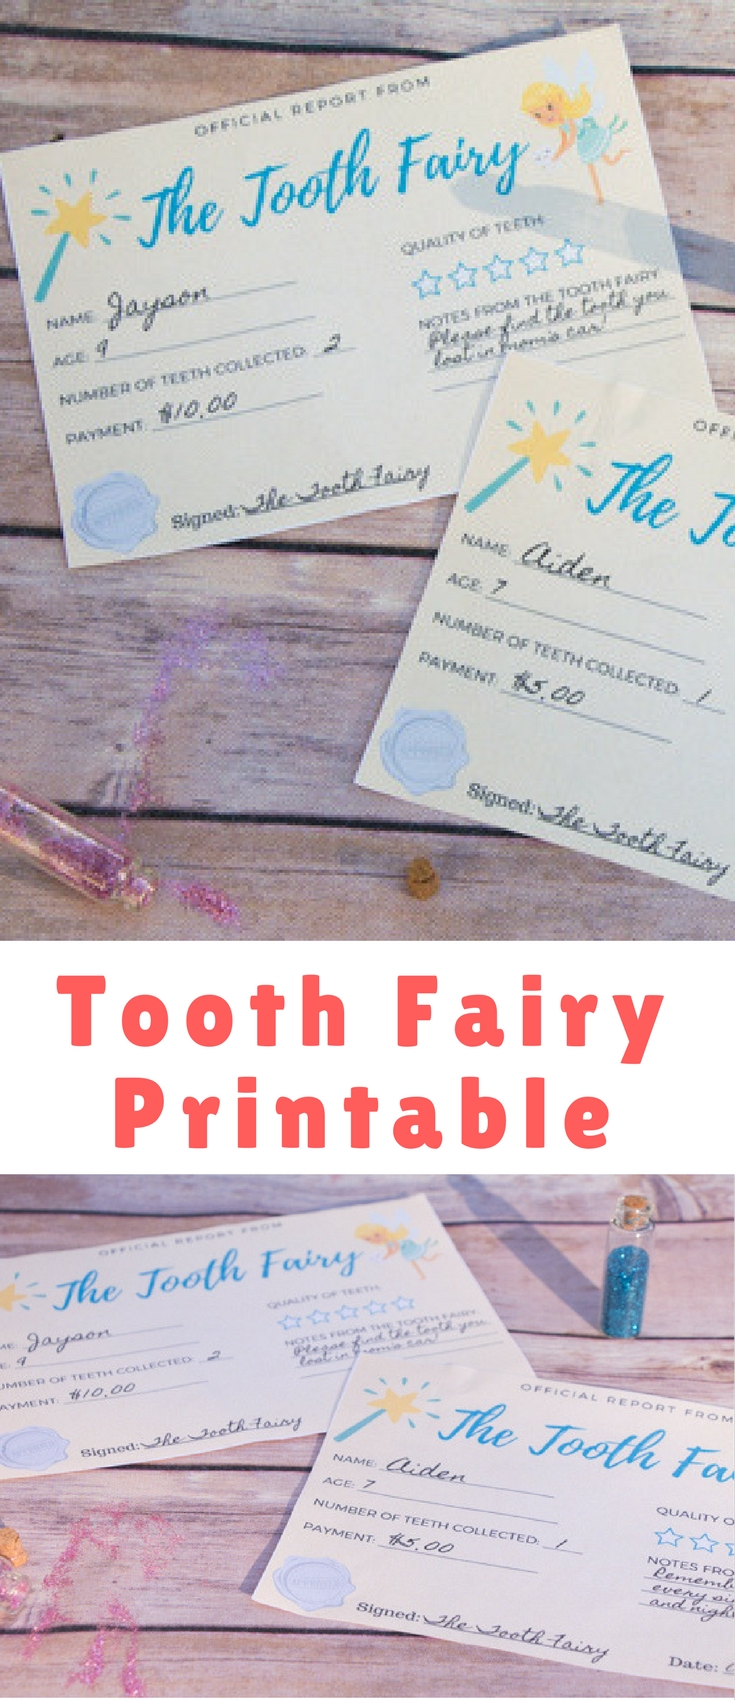 I never turn down the chance to entice the kids with the possibility of magic – and the Tooth Fairy is a personal favorite because she has no season. The Tooth Fairy can make her grand appearance at any time, all you need is an extra wiggly tooth.